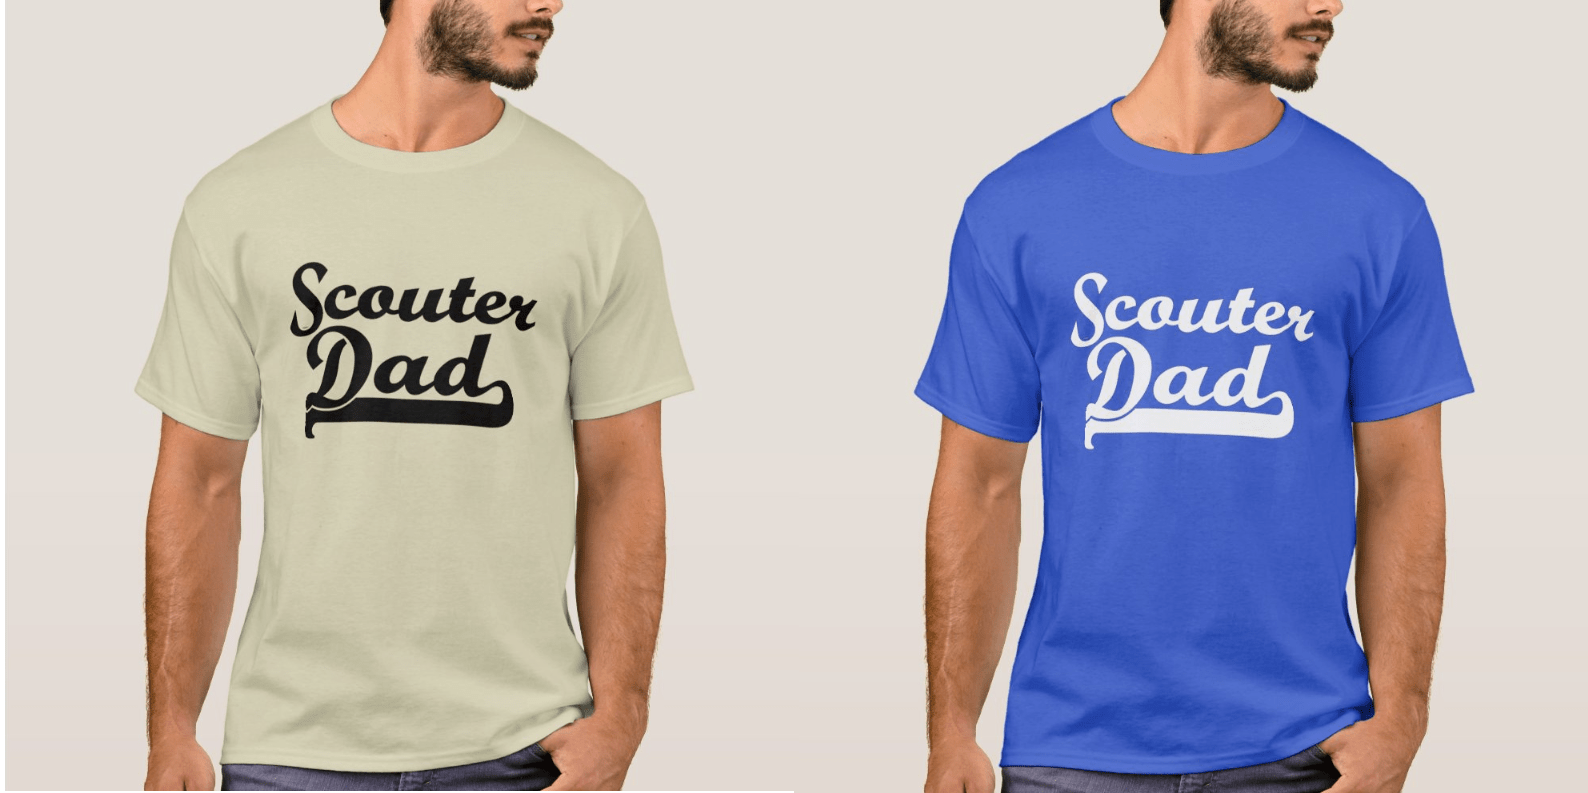 Scouter Dad Shirts Sports Look